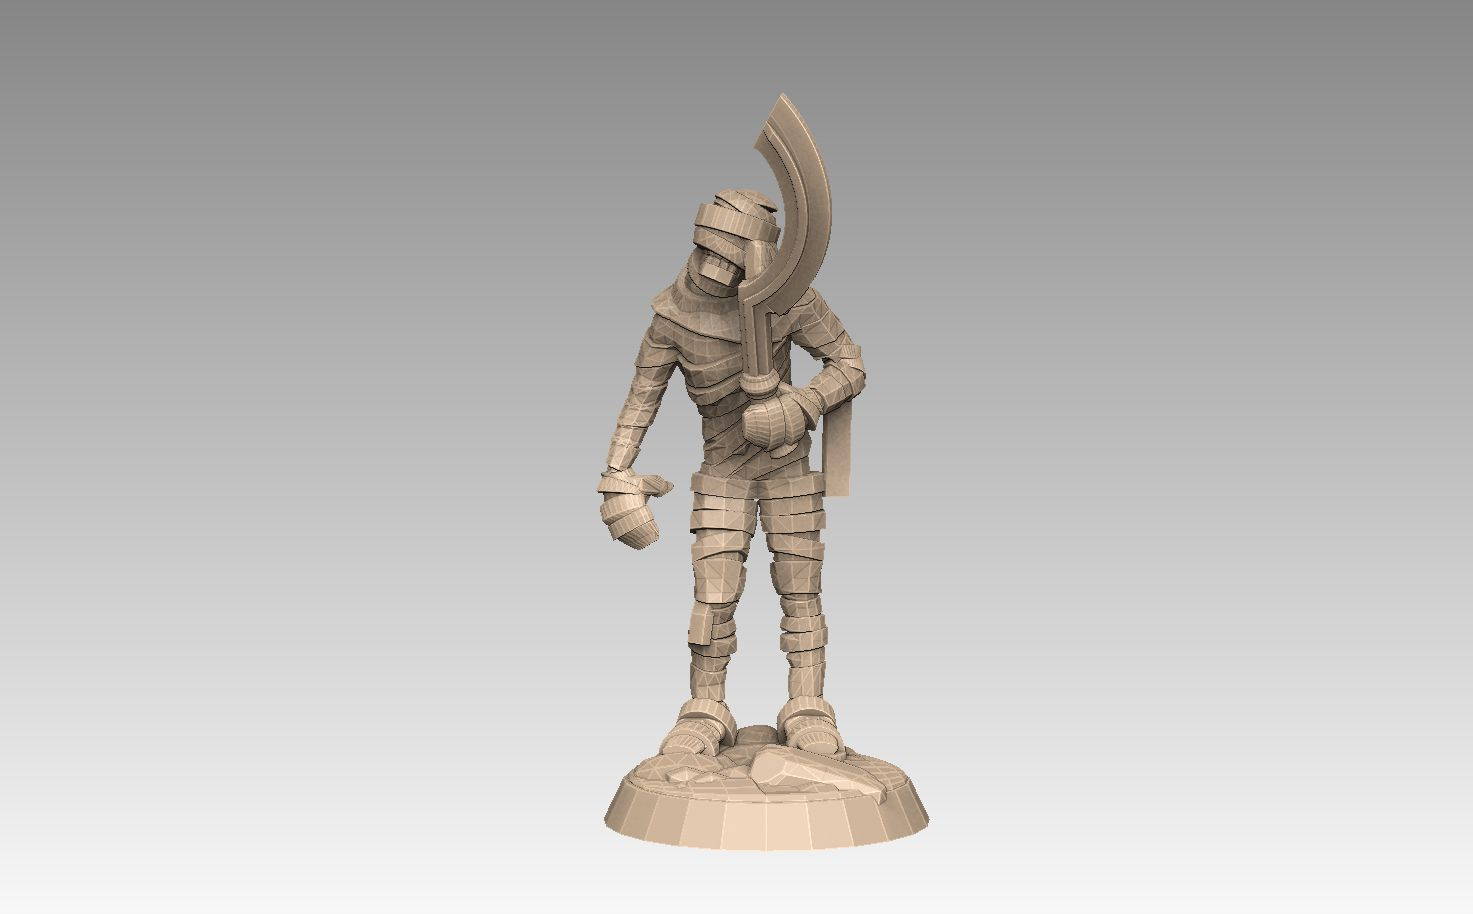 mh2-prom4f.jpg Download STL file Mummy Pack 1 • 3D printing object, SharedogMiniatures